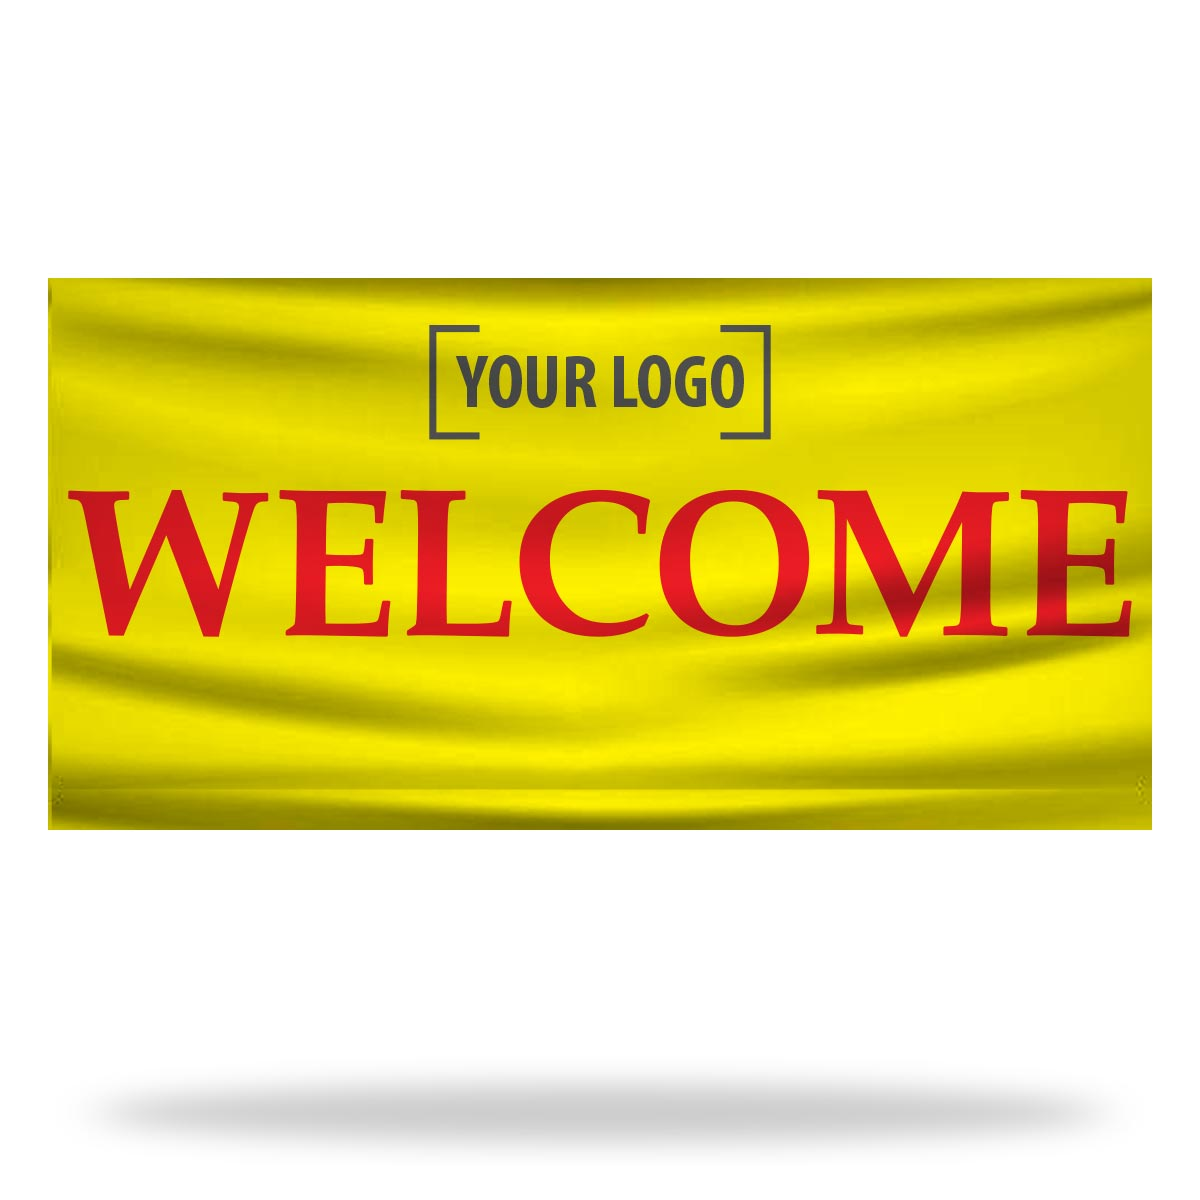 Welcome Flags & Banners Design 05